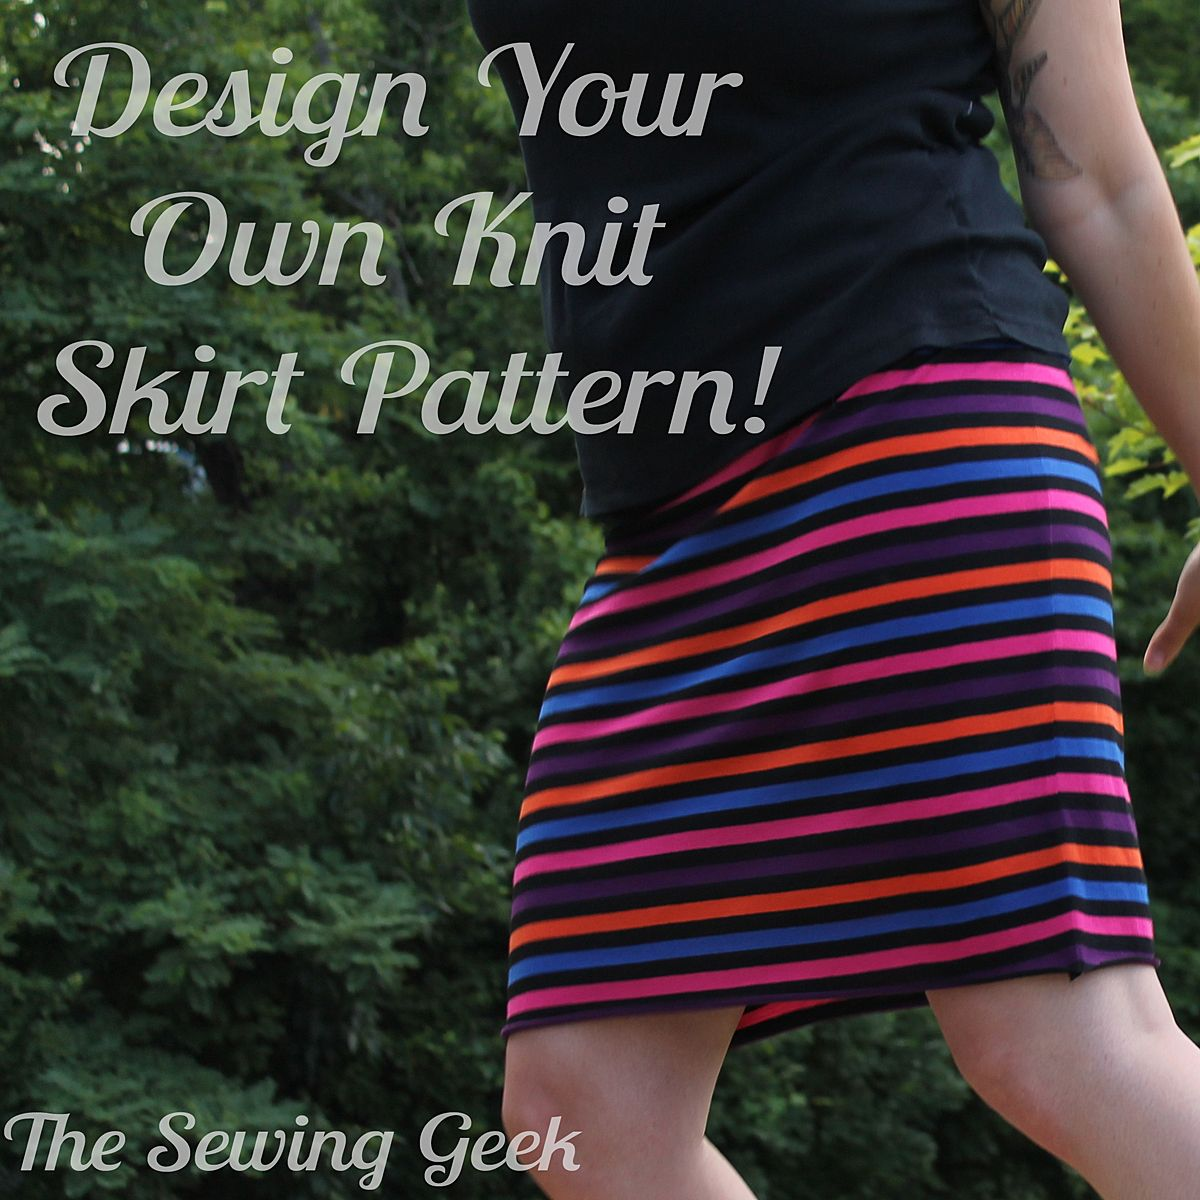 Design your own knit skirt pattern free pattern calculator and design your own knit skirt pattern free pattern calculator and tutorial bankloansurffo Images